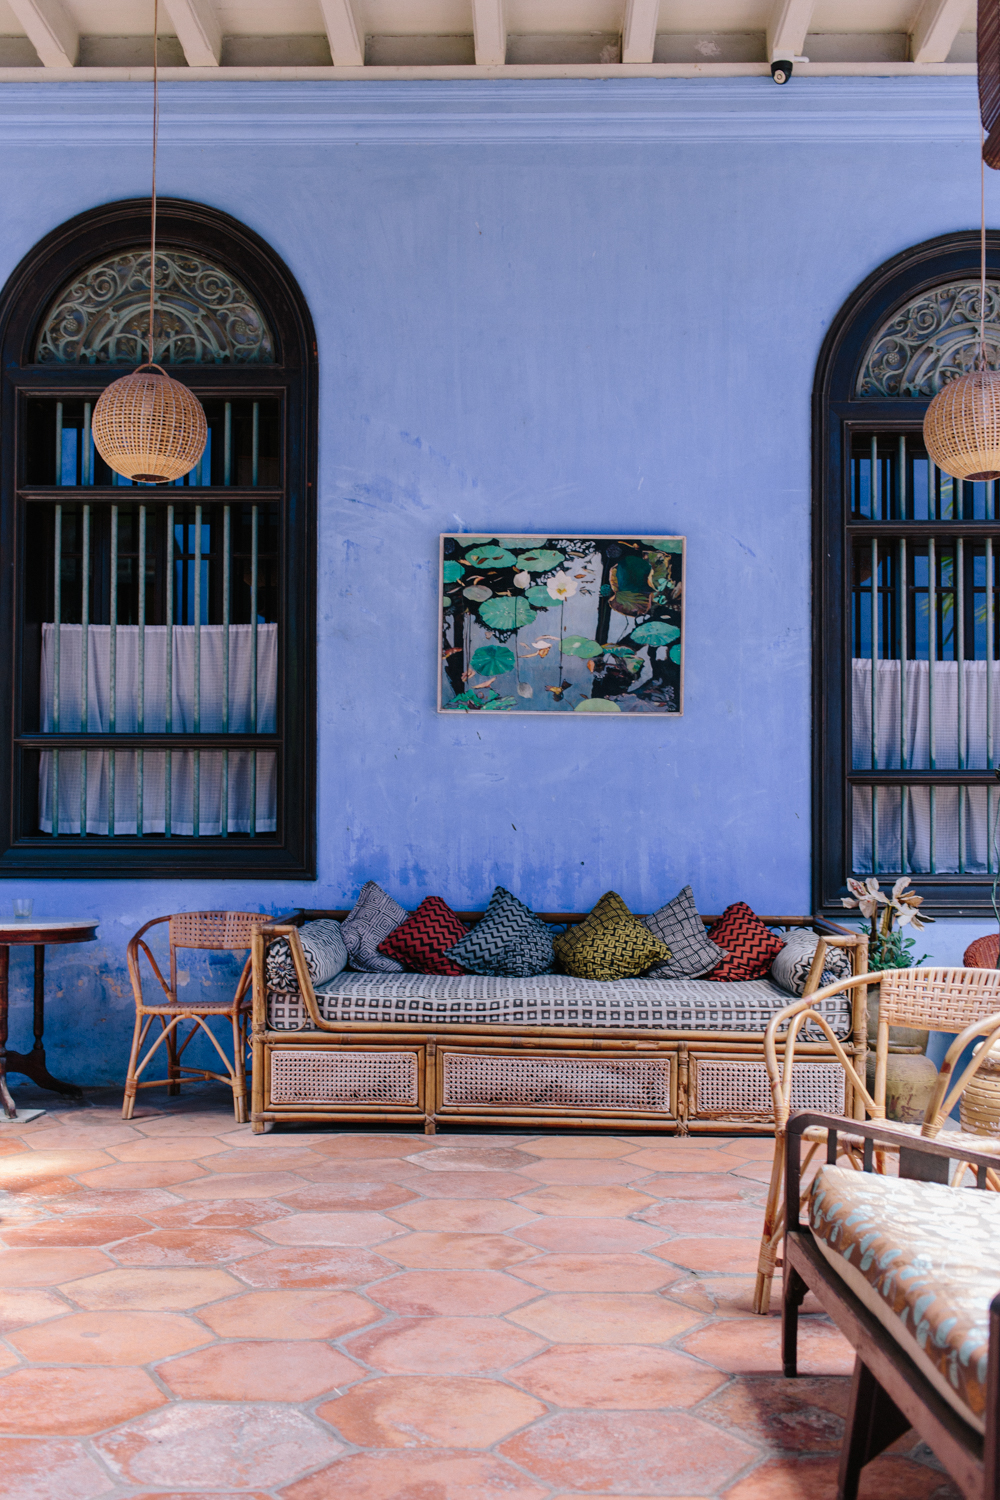 This setup has the vibe of dreamy riads in Marrakech.